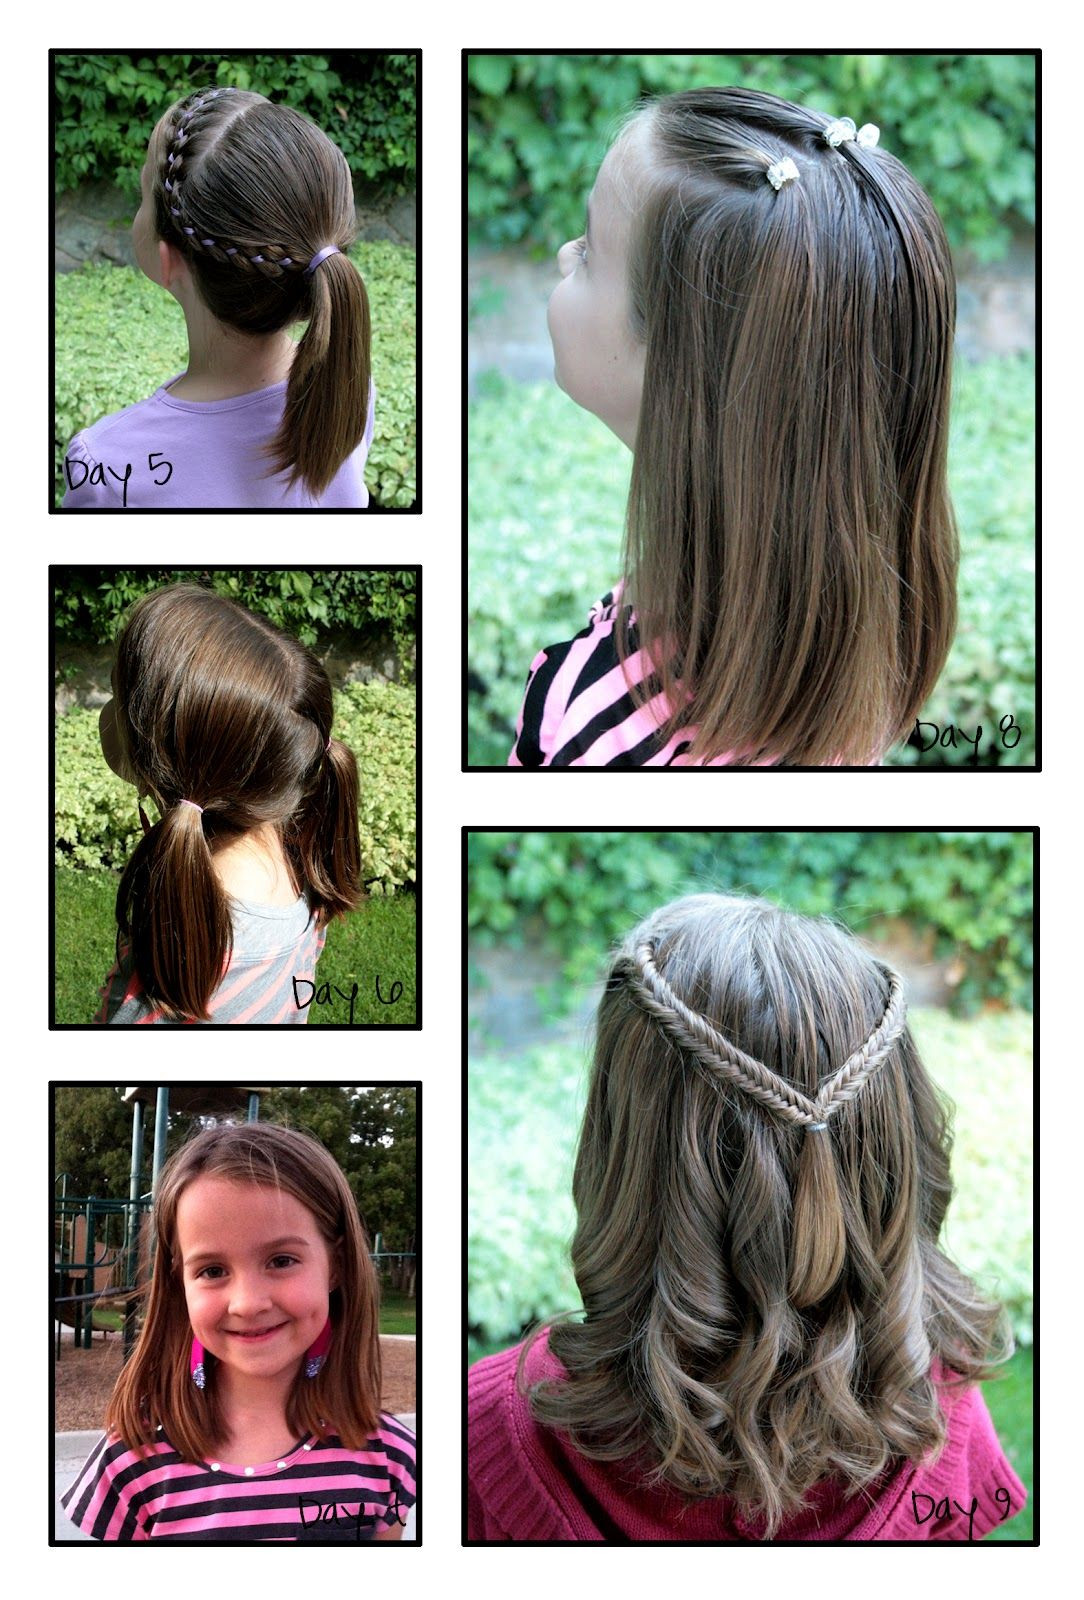 Best ideas about Girly Hairstyles For Kids . Save or Pin Girly Do s By Jenn School Week 2 Now.